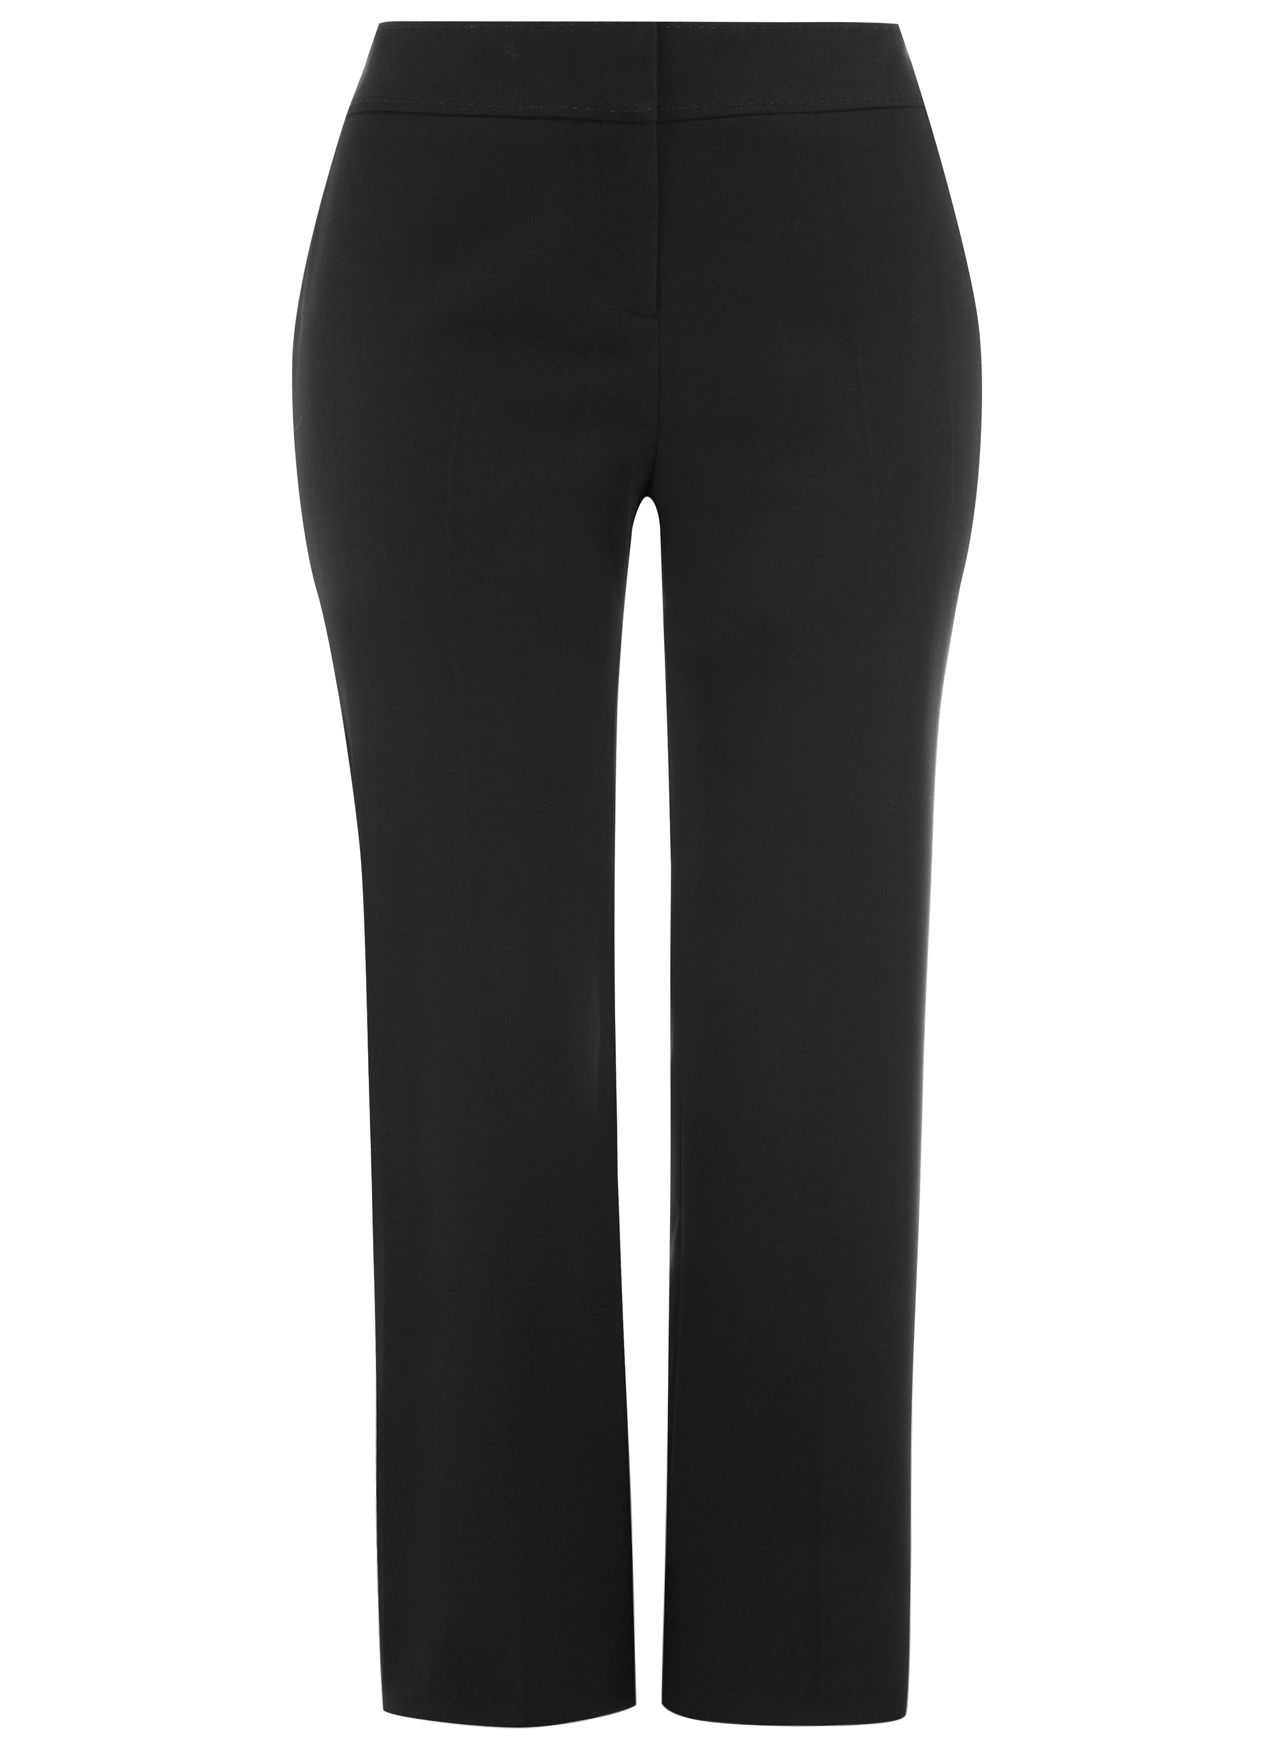 Black Straight Leg Trousers